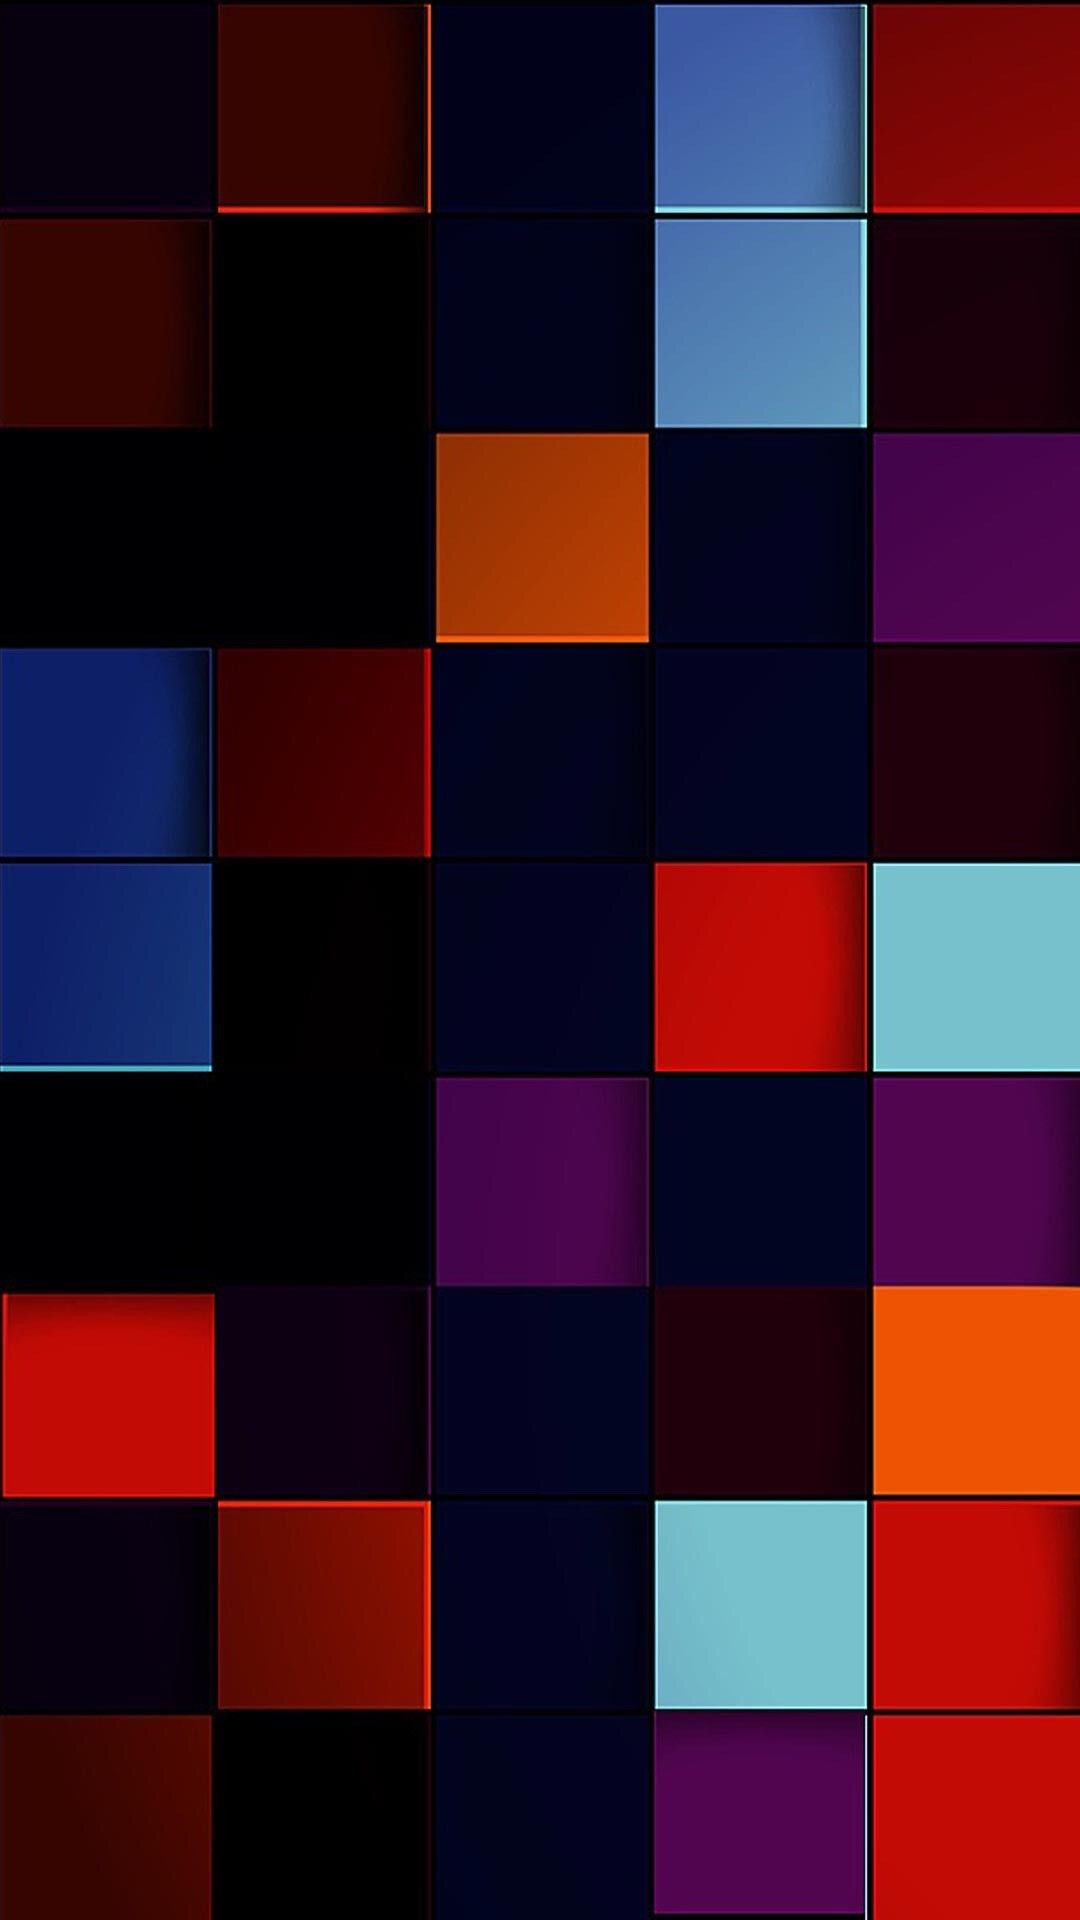 Colorful Geometric Shapes Wallpaper | Abstract iphone ...